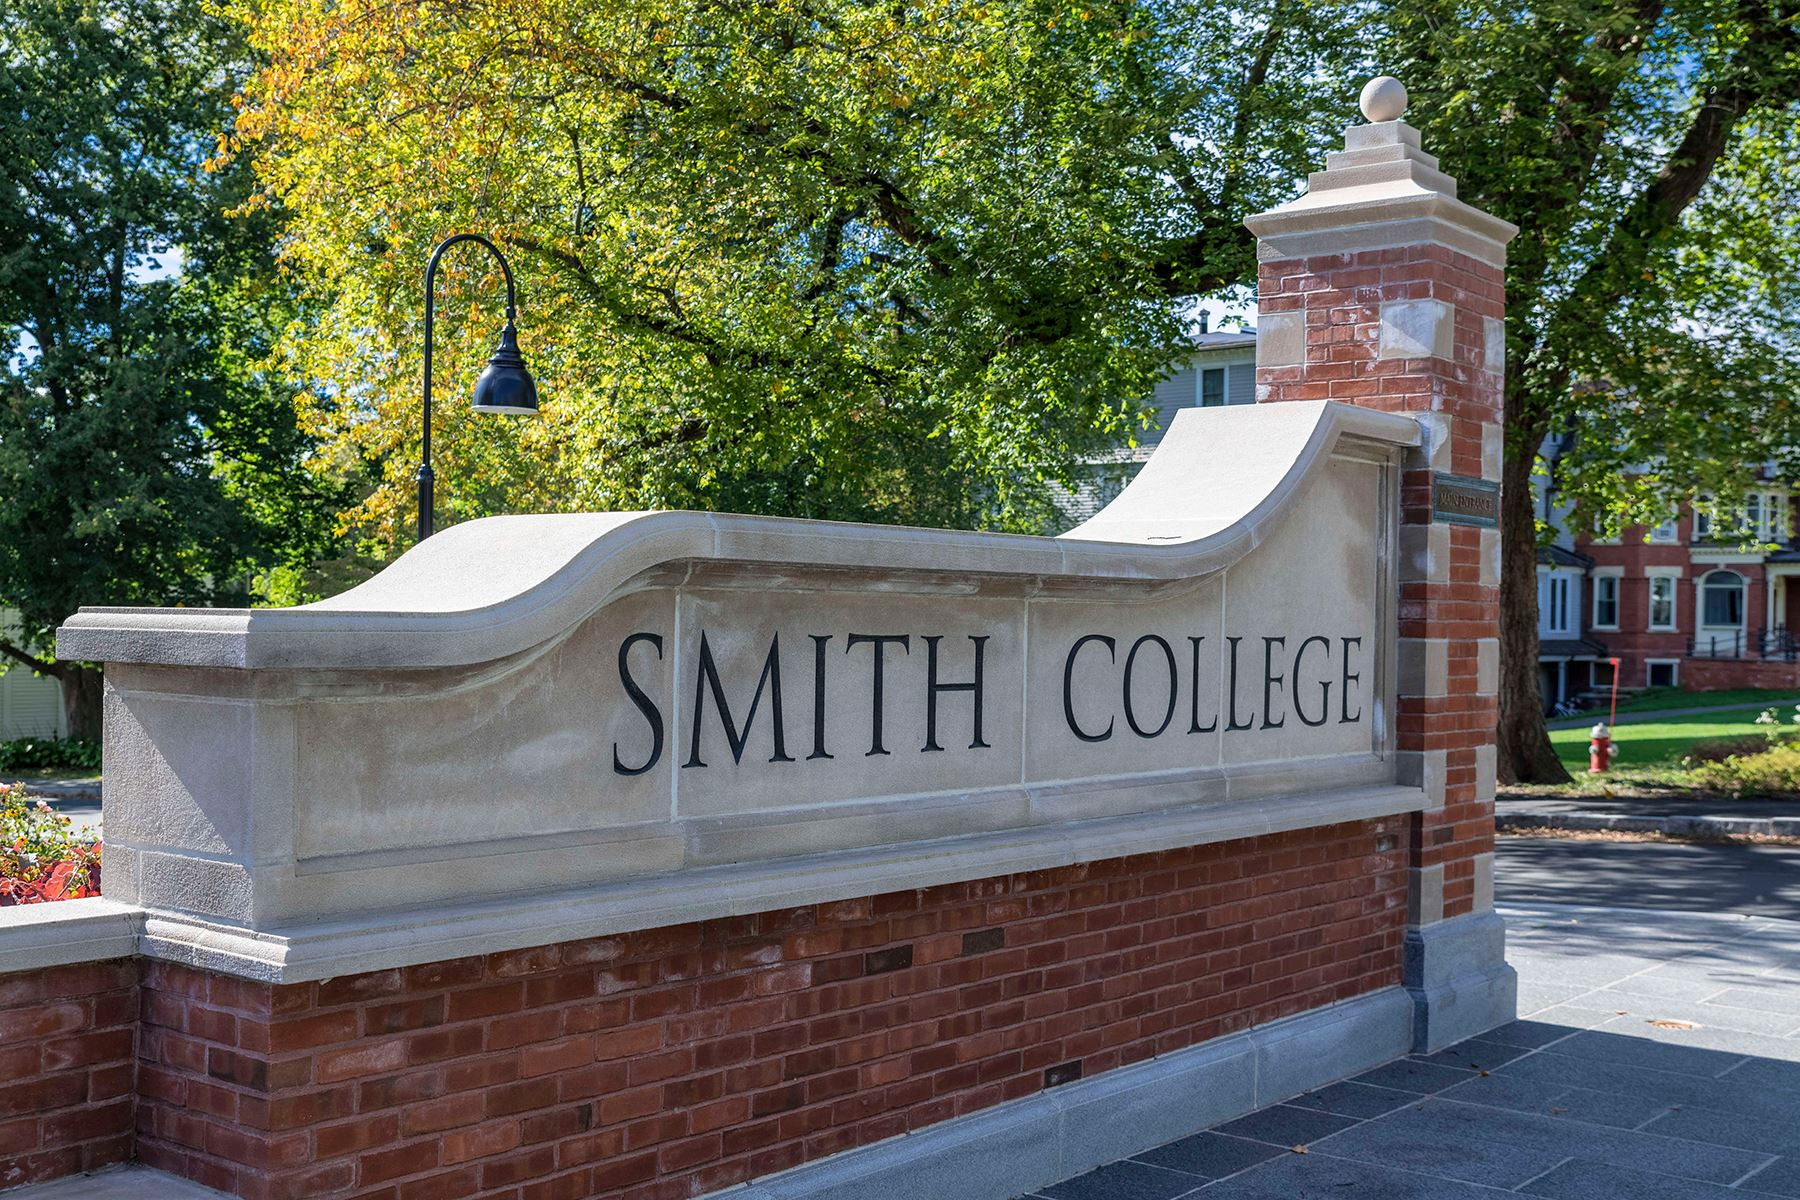 Smith College entrance